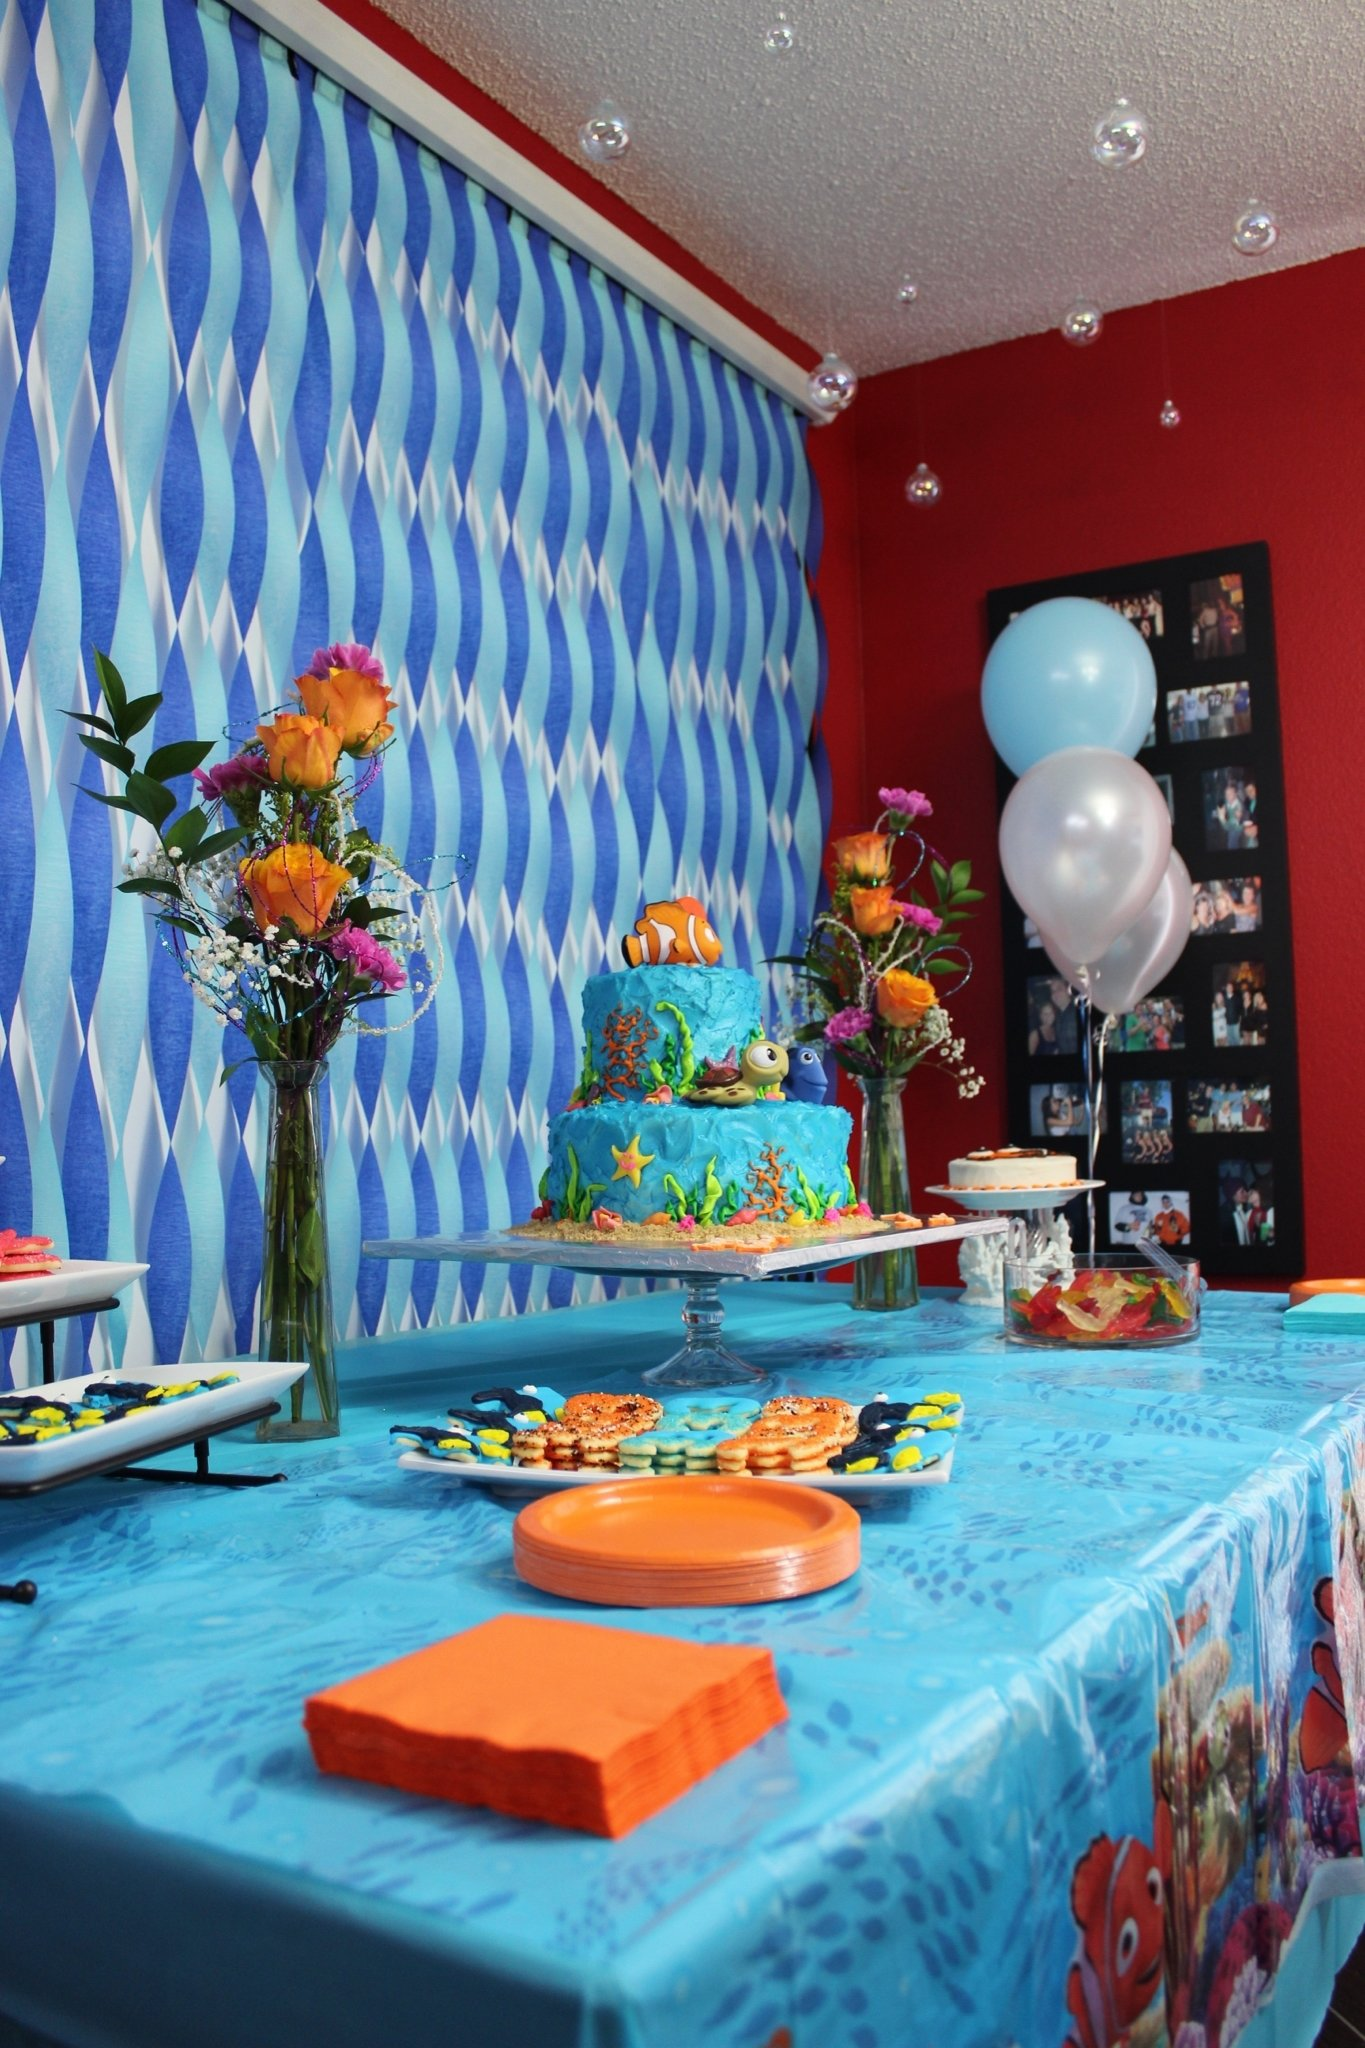 10 Stylish Finding Nemo Birthday Party Ideas cake dessert table decorations finding nemo theme party finding 2020